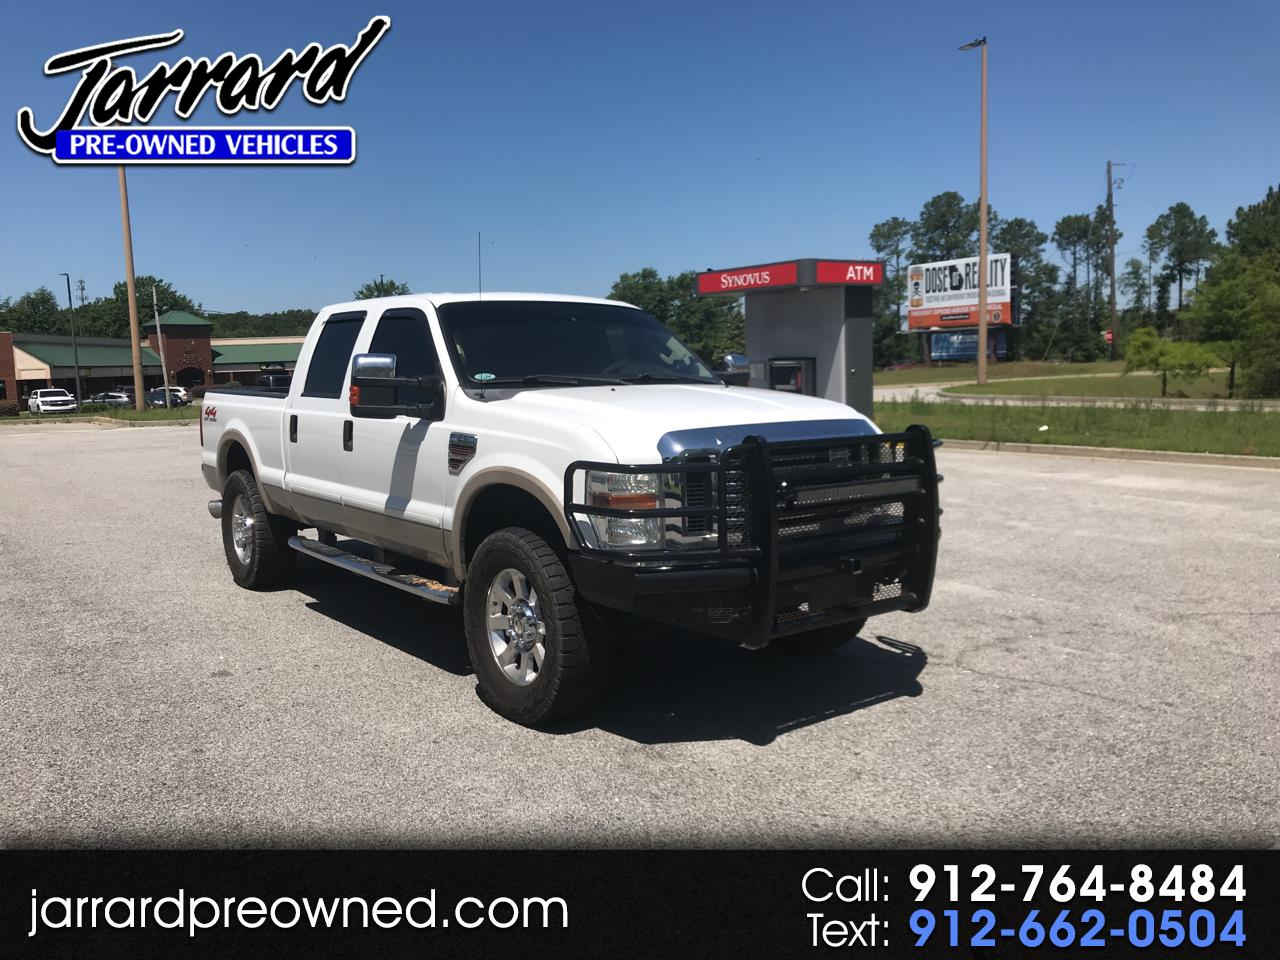 2008 Ford F-250 HD Crew Cab 4dr 152.2